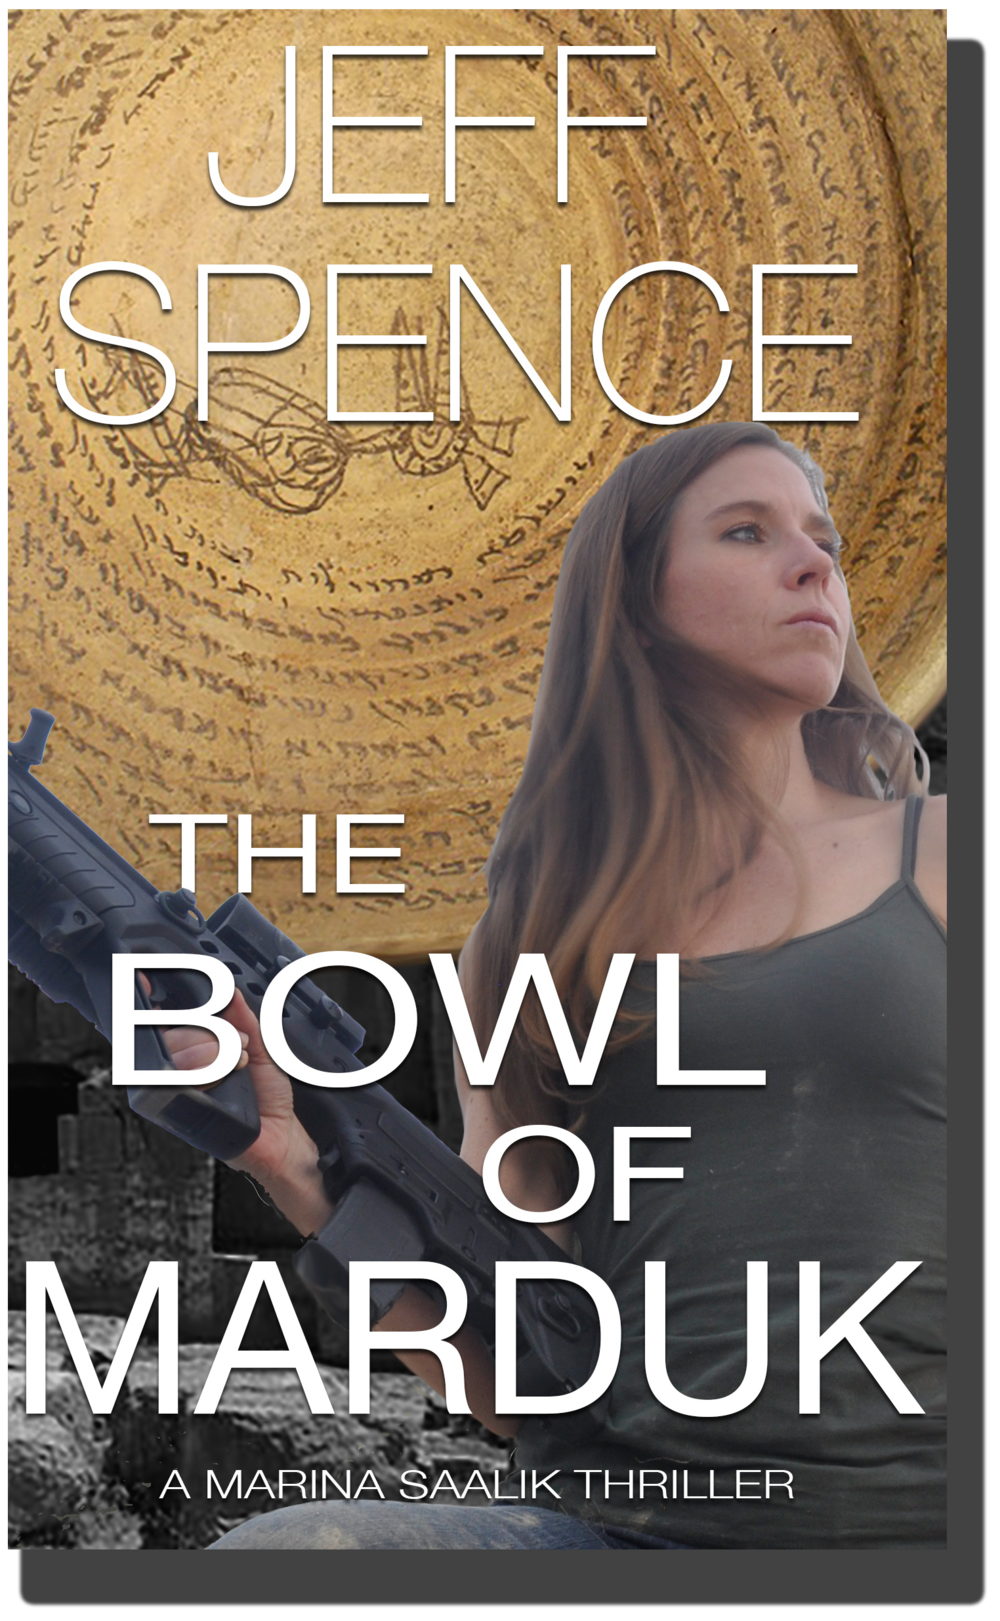 Book Two  Set in Oxford and Iraq  Ben disappears and it is up to Marina to secure his unusual ransom - but she's never been one to cooperate easily.  Warning: Violence.